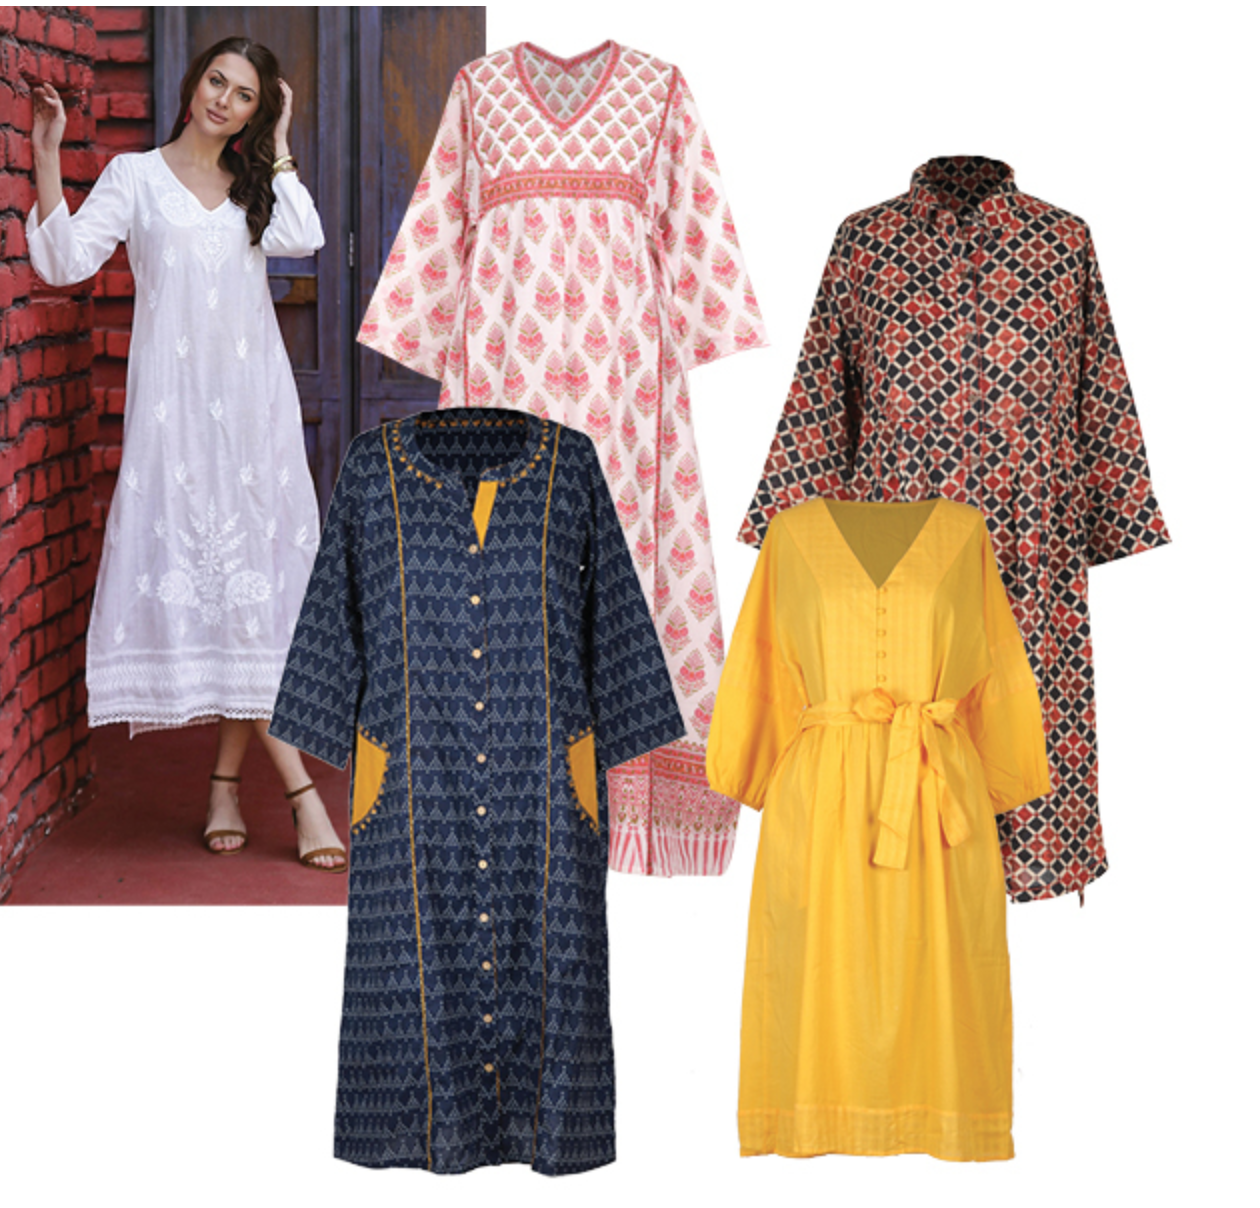 House Dresses from the Look Book Fall fashion